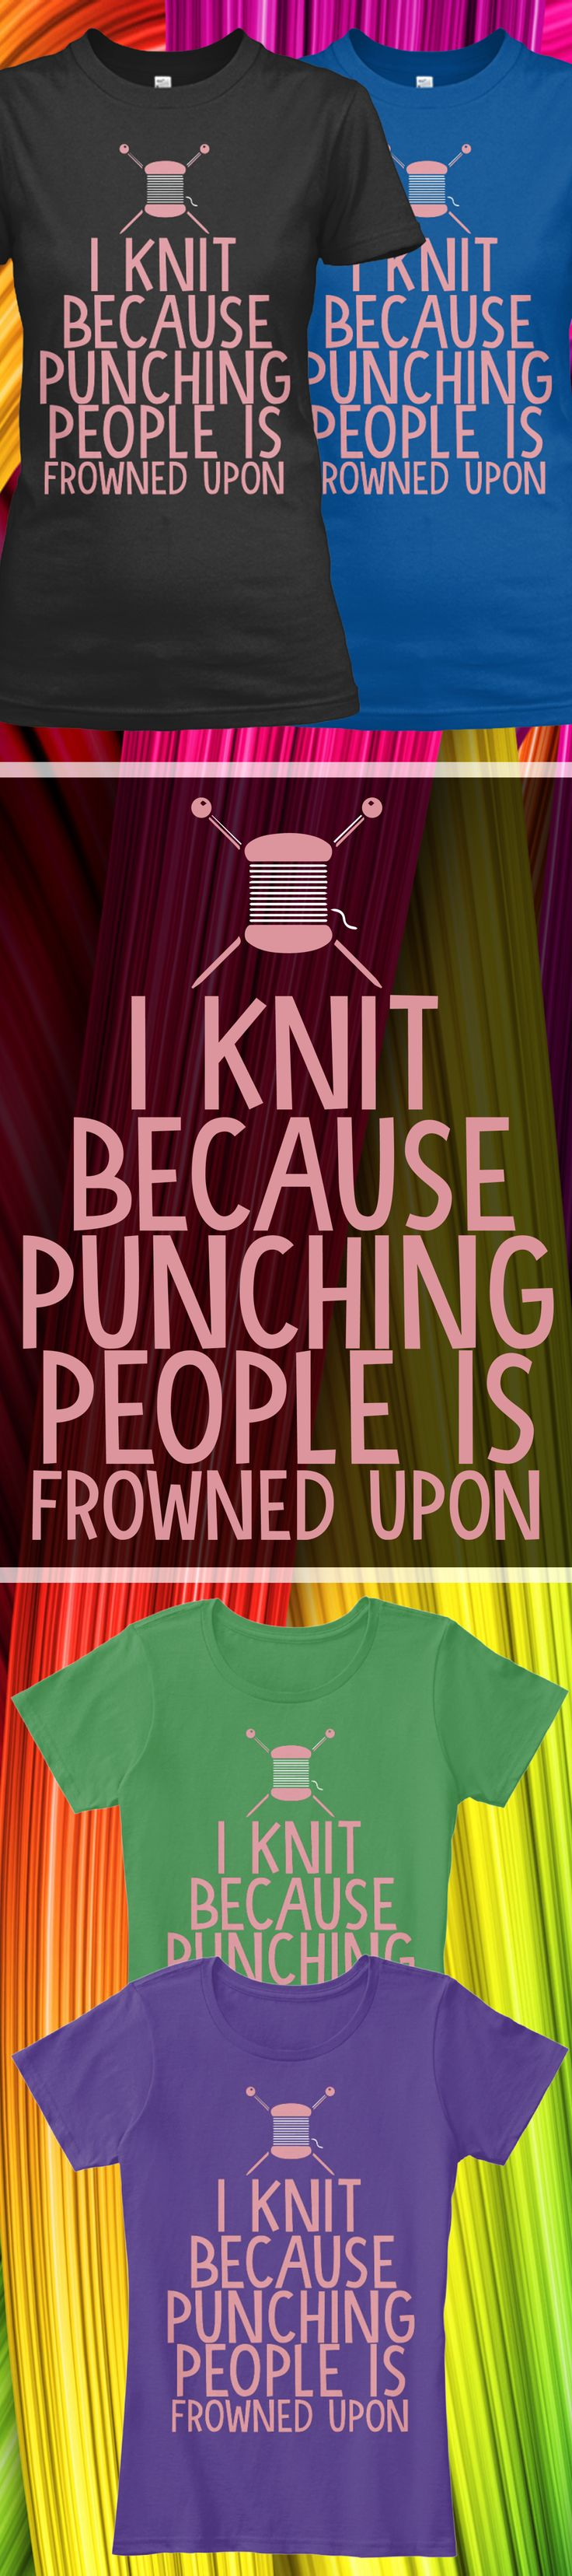 Do you like knitting?! Check out this awesome I knit Because Punching People t-shirt you will not find anywhere else. Not sold in stores and only 2 days left for free shipping! Grab yours or gift it to a friend, you will both love it More